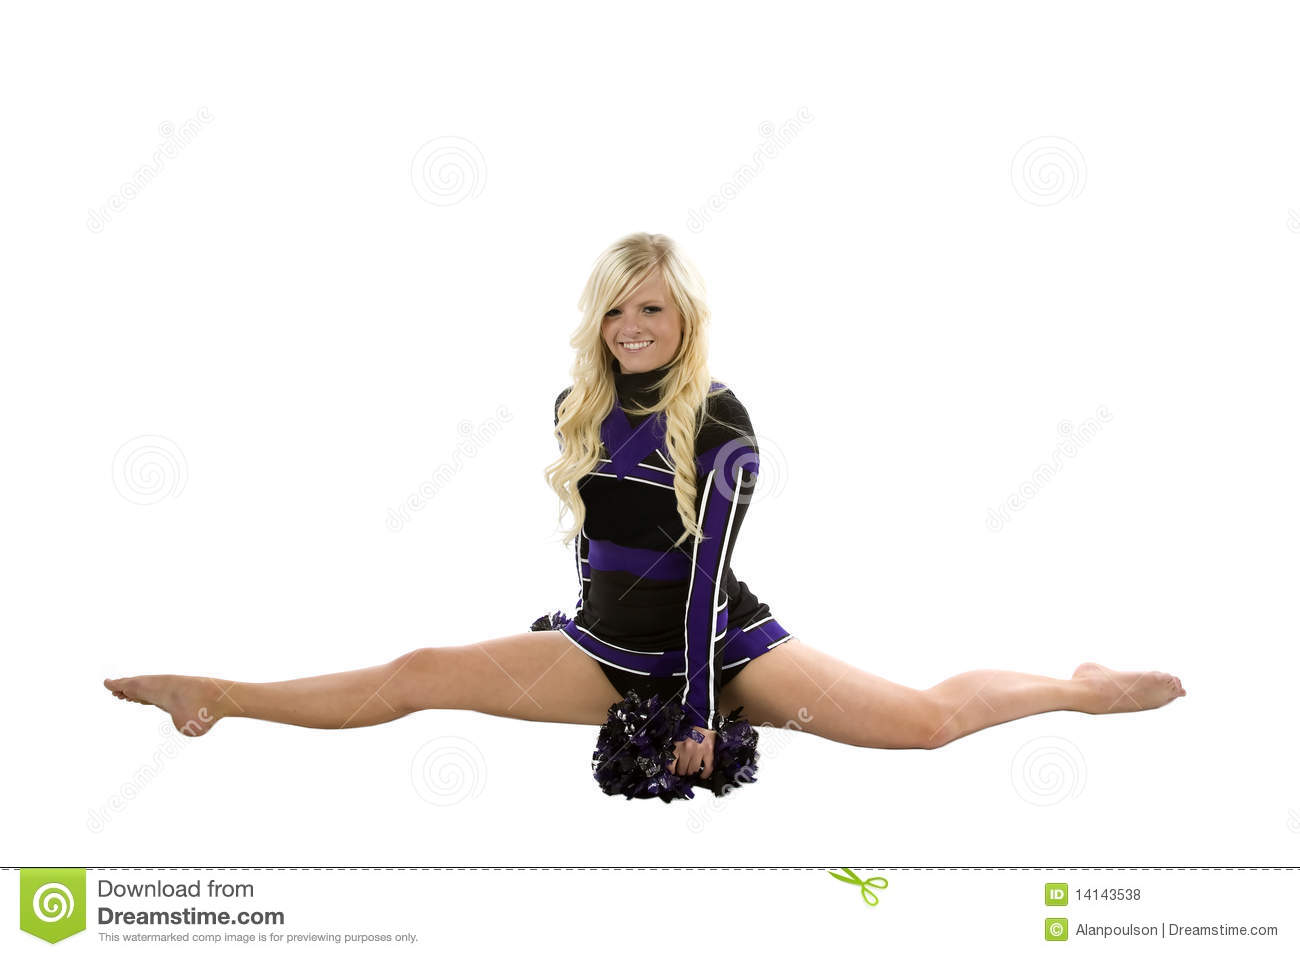 doing girl cheerleader splits